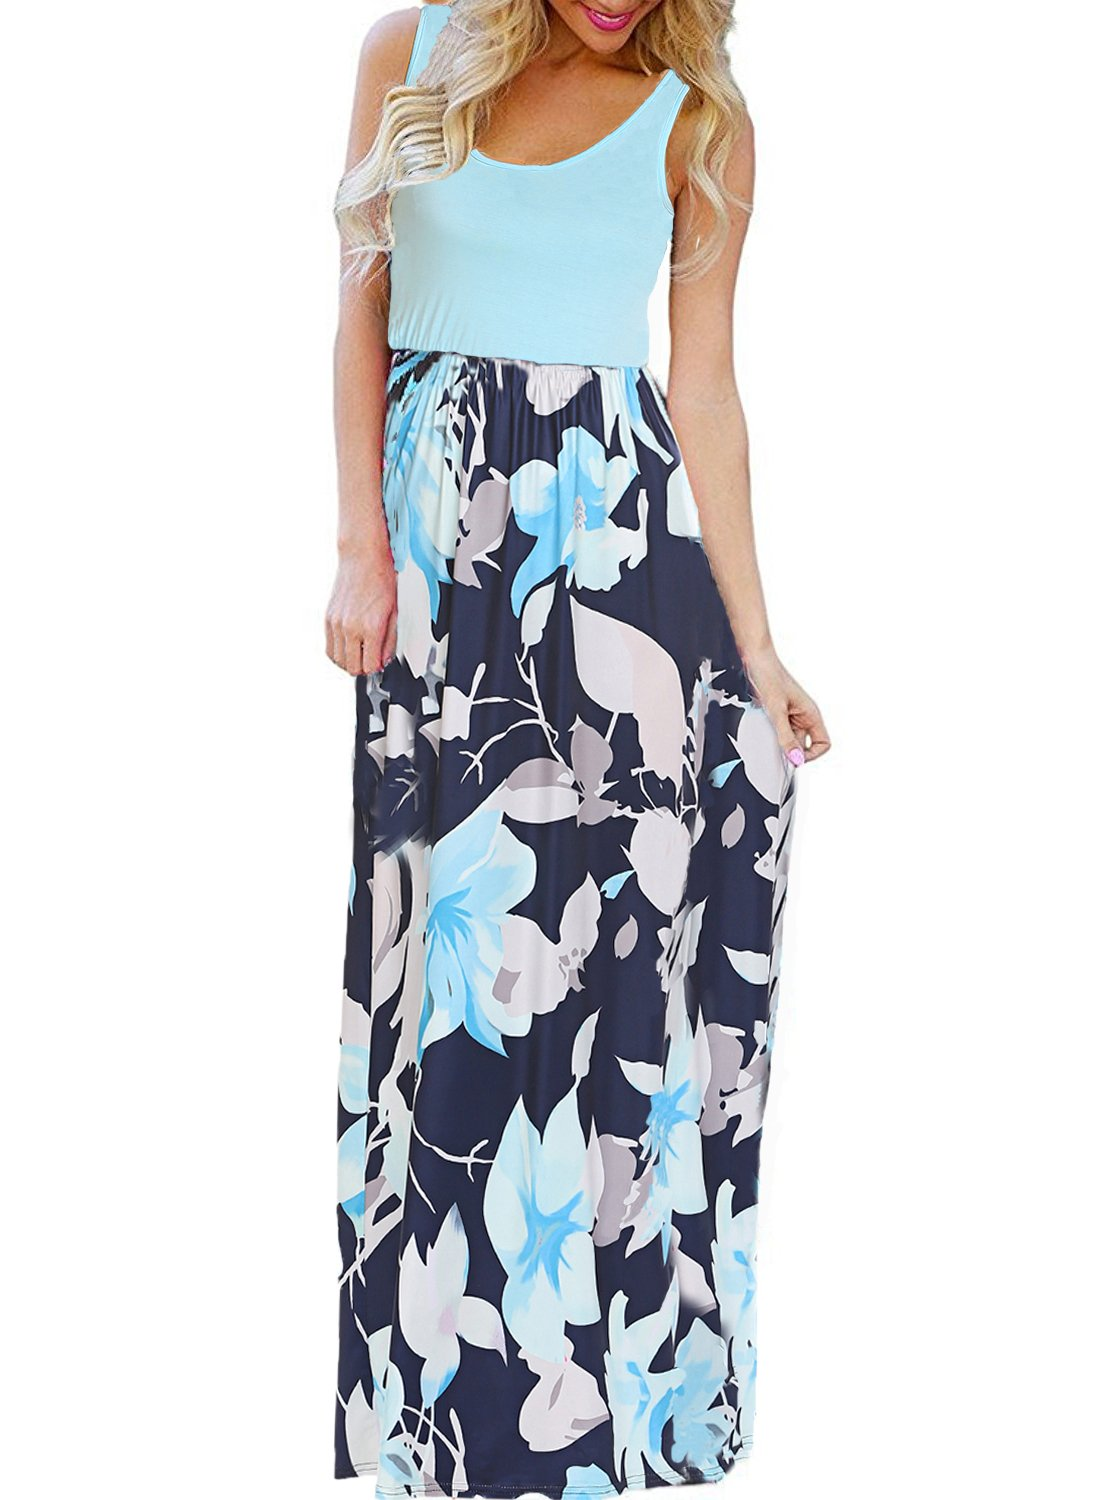 BLUETIME Women's Summer Floral Long Boho Dress Sleeveless Color Block Maxi Pleated Dress (Green, L)